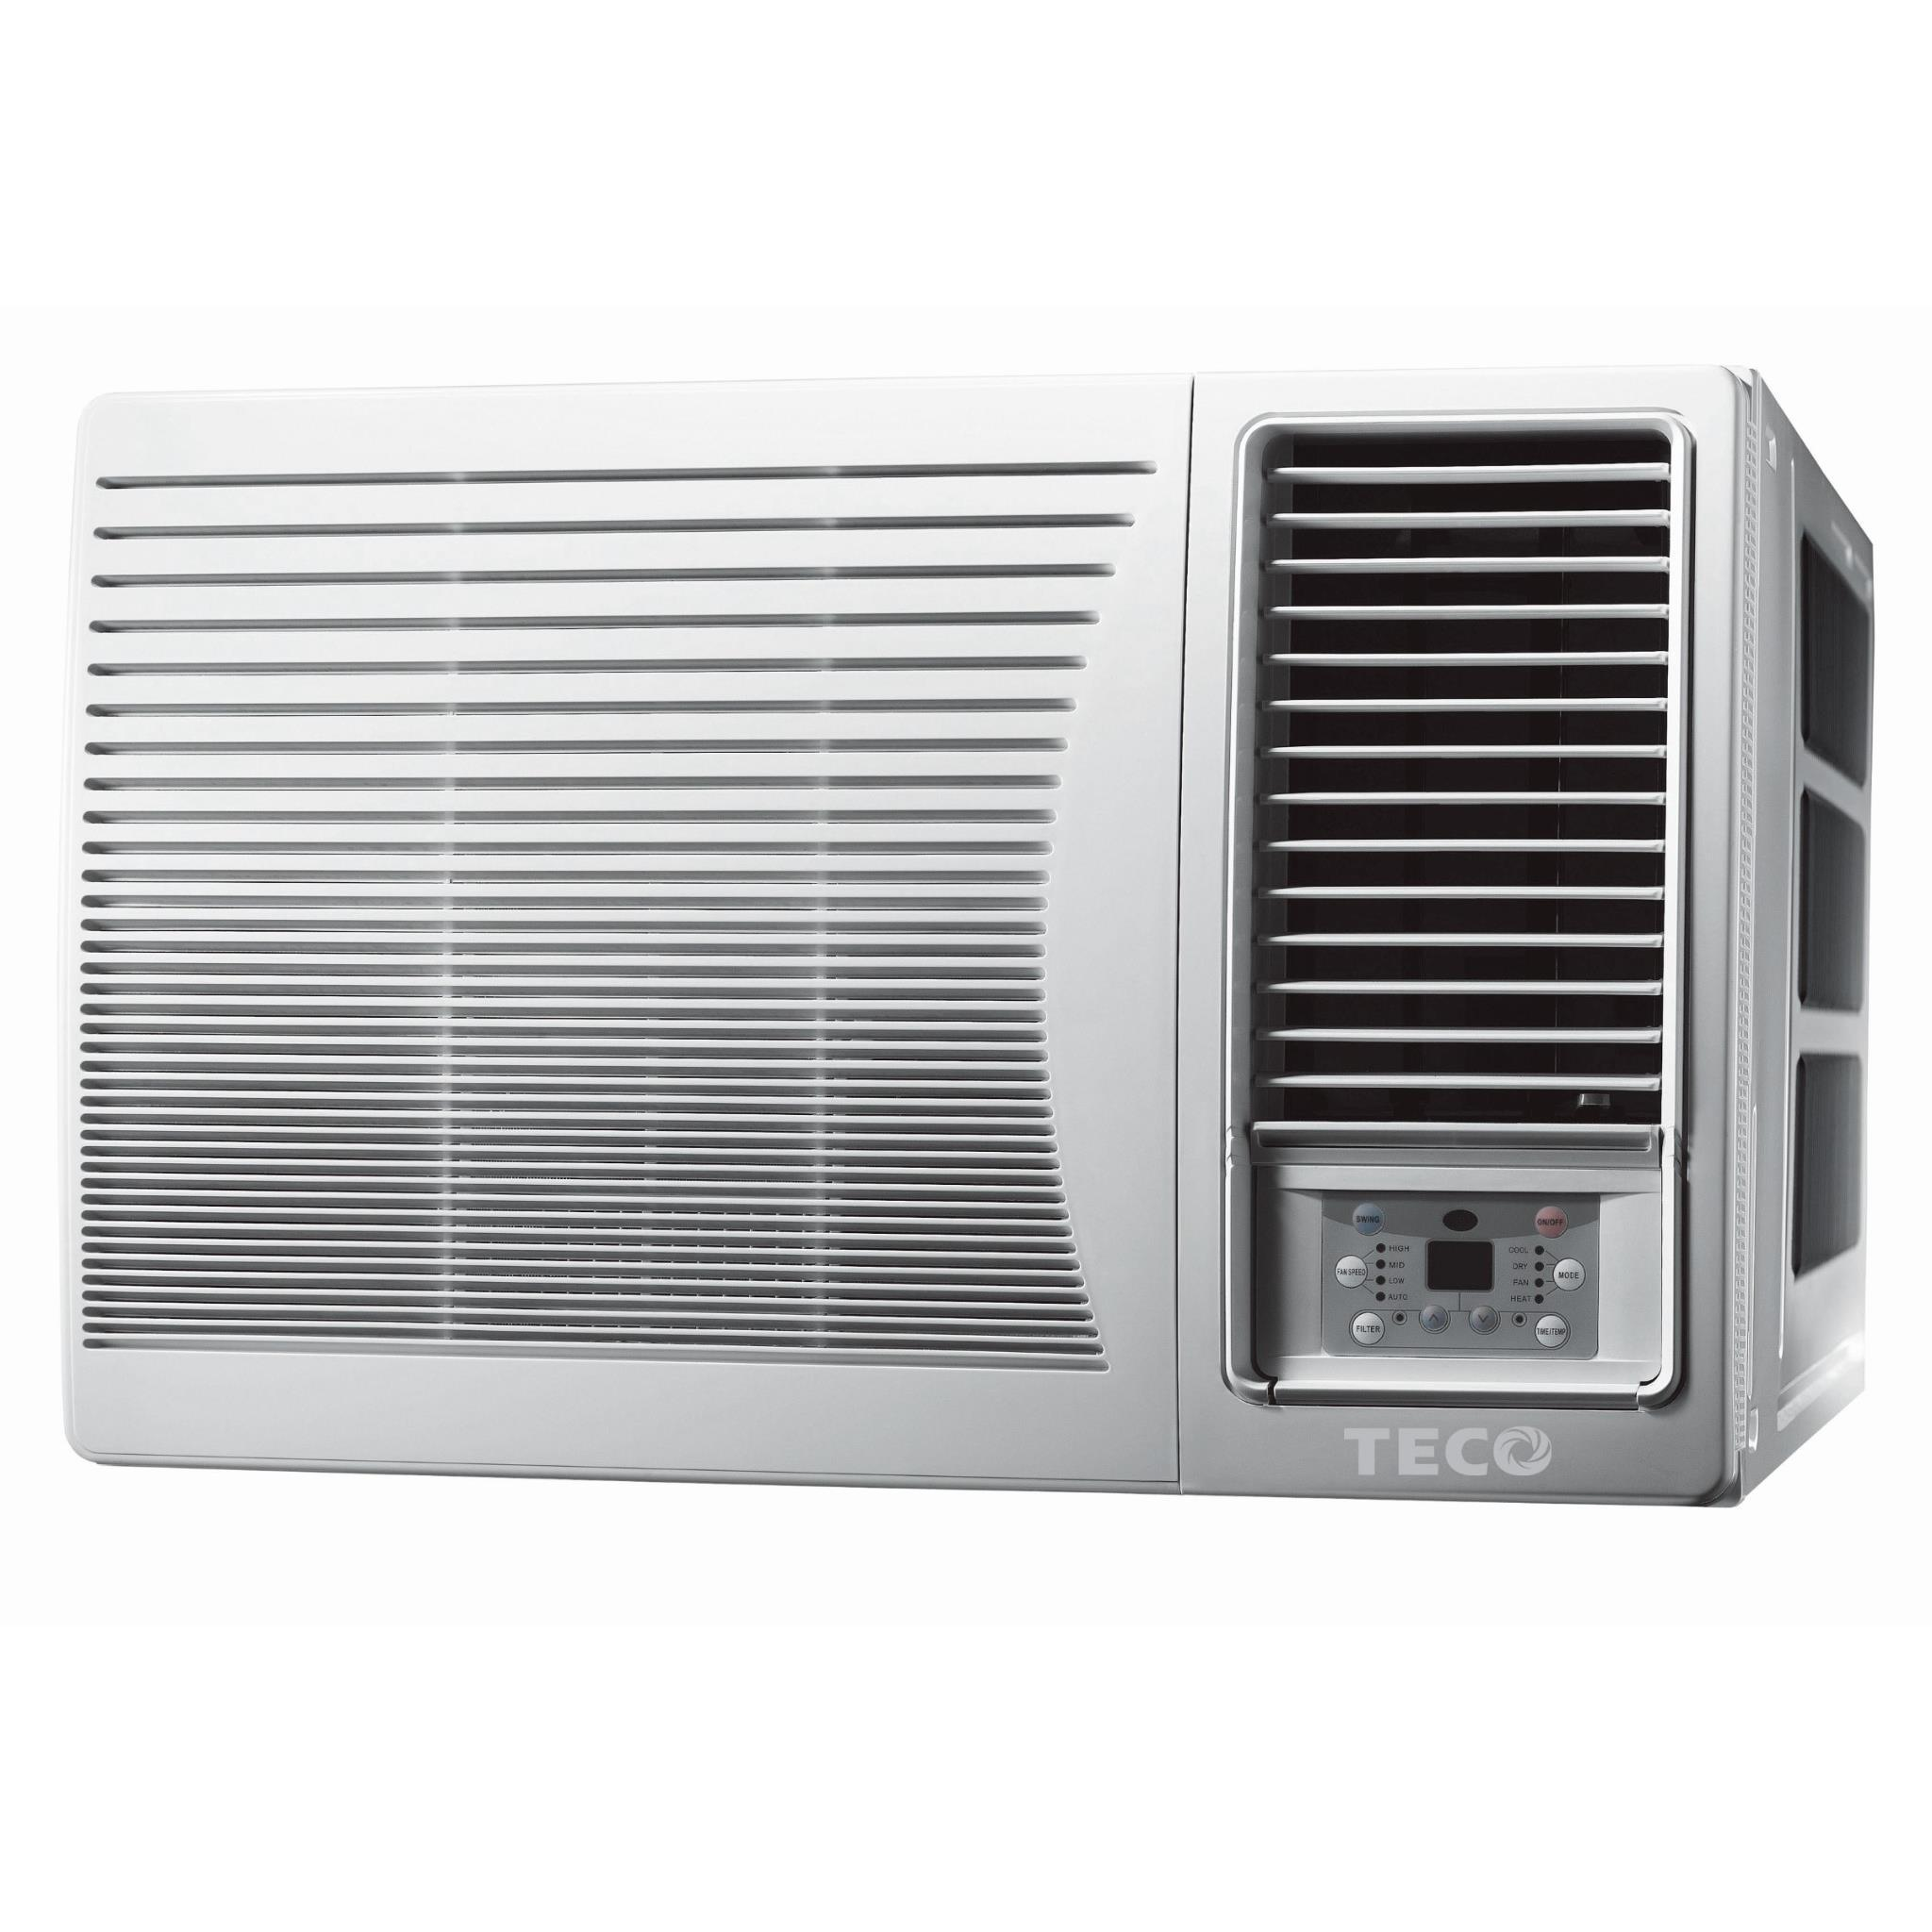 Teco 5.3kW Window/Wall Room Cooling Only Air Conditioner